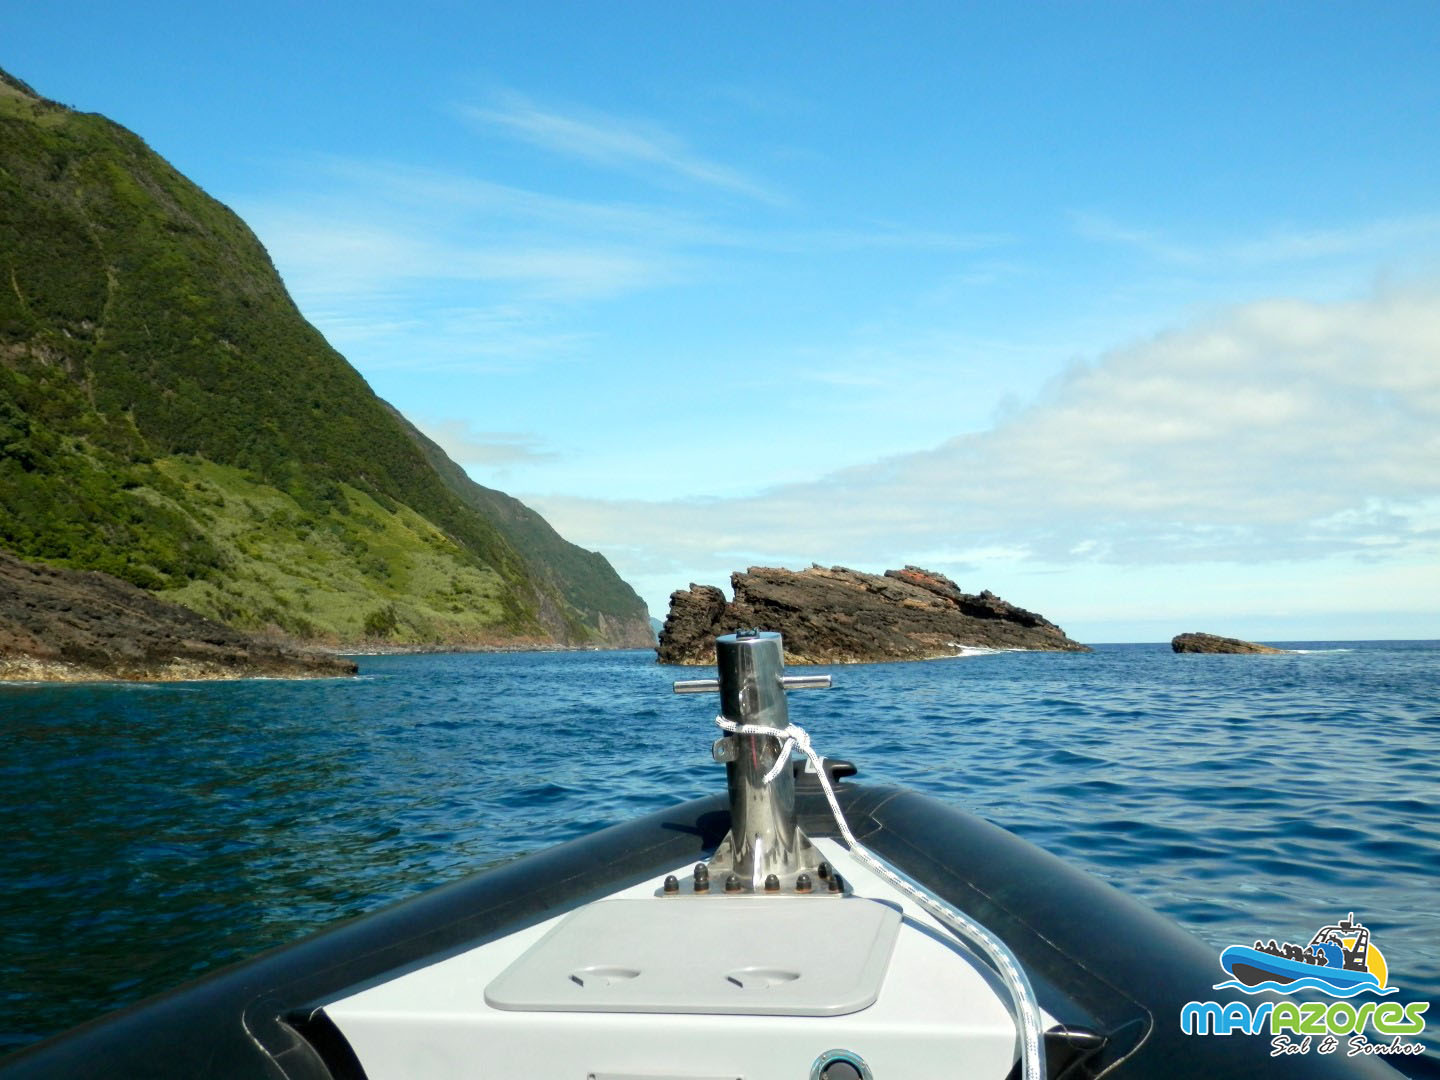 Azores Boat tours